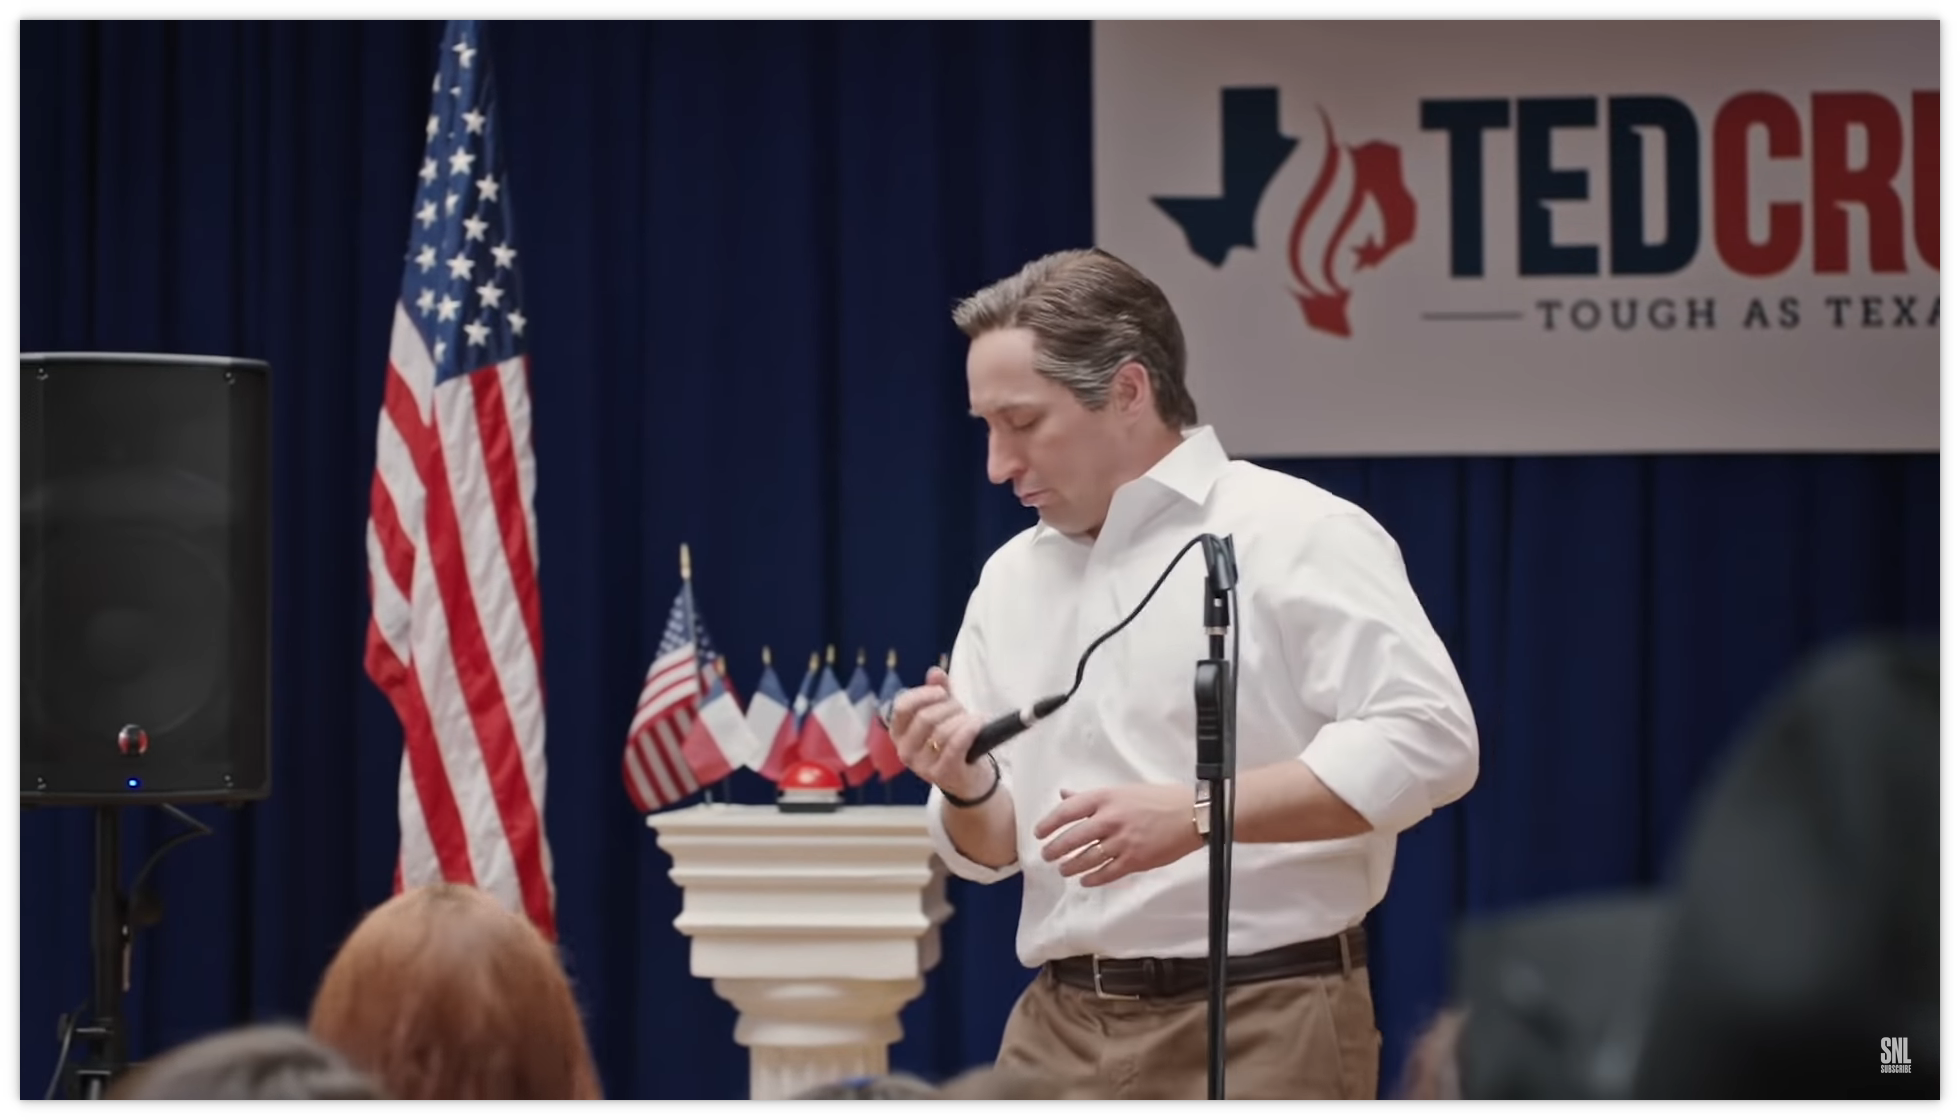 SNL spoofs Ted Cruz